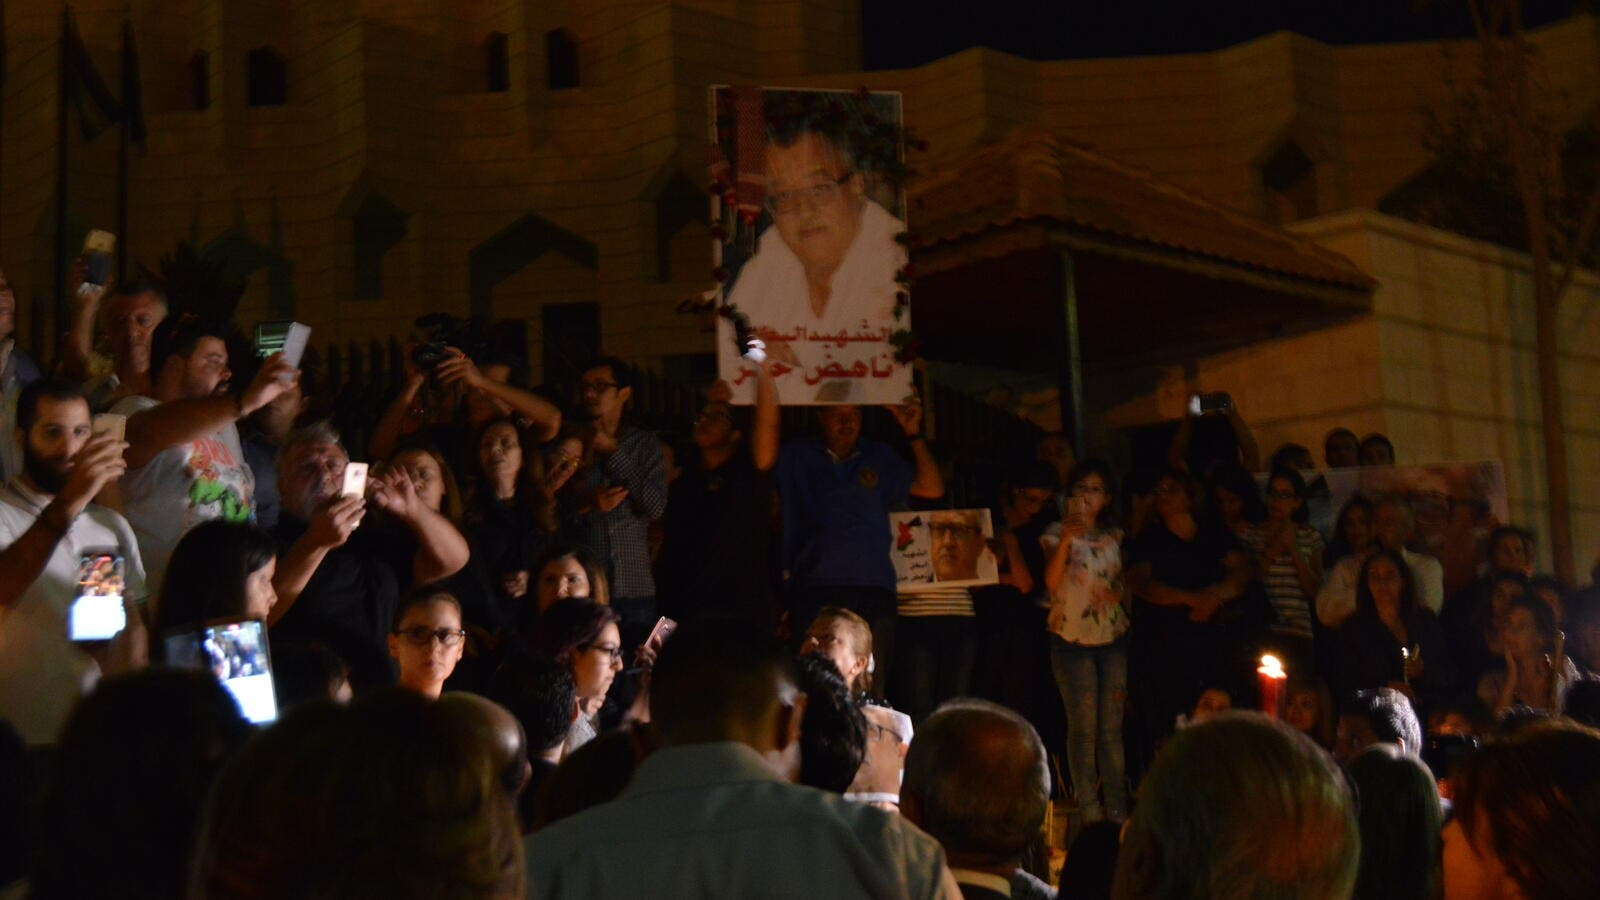 Mourners mark the death of Nahed Hattar on Monday night (Al Bawaba)